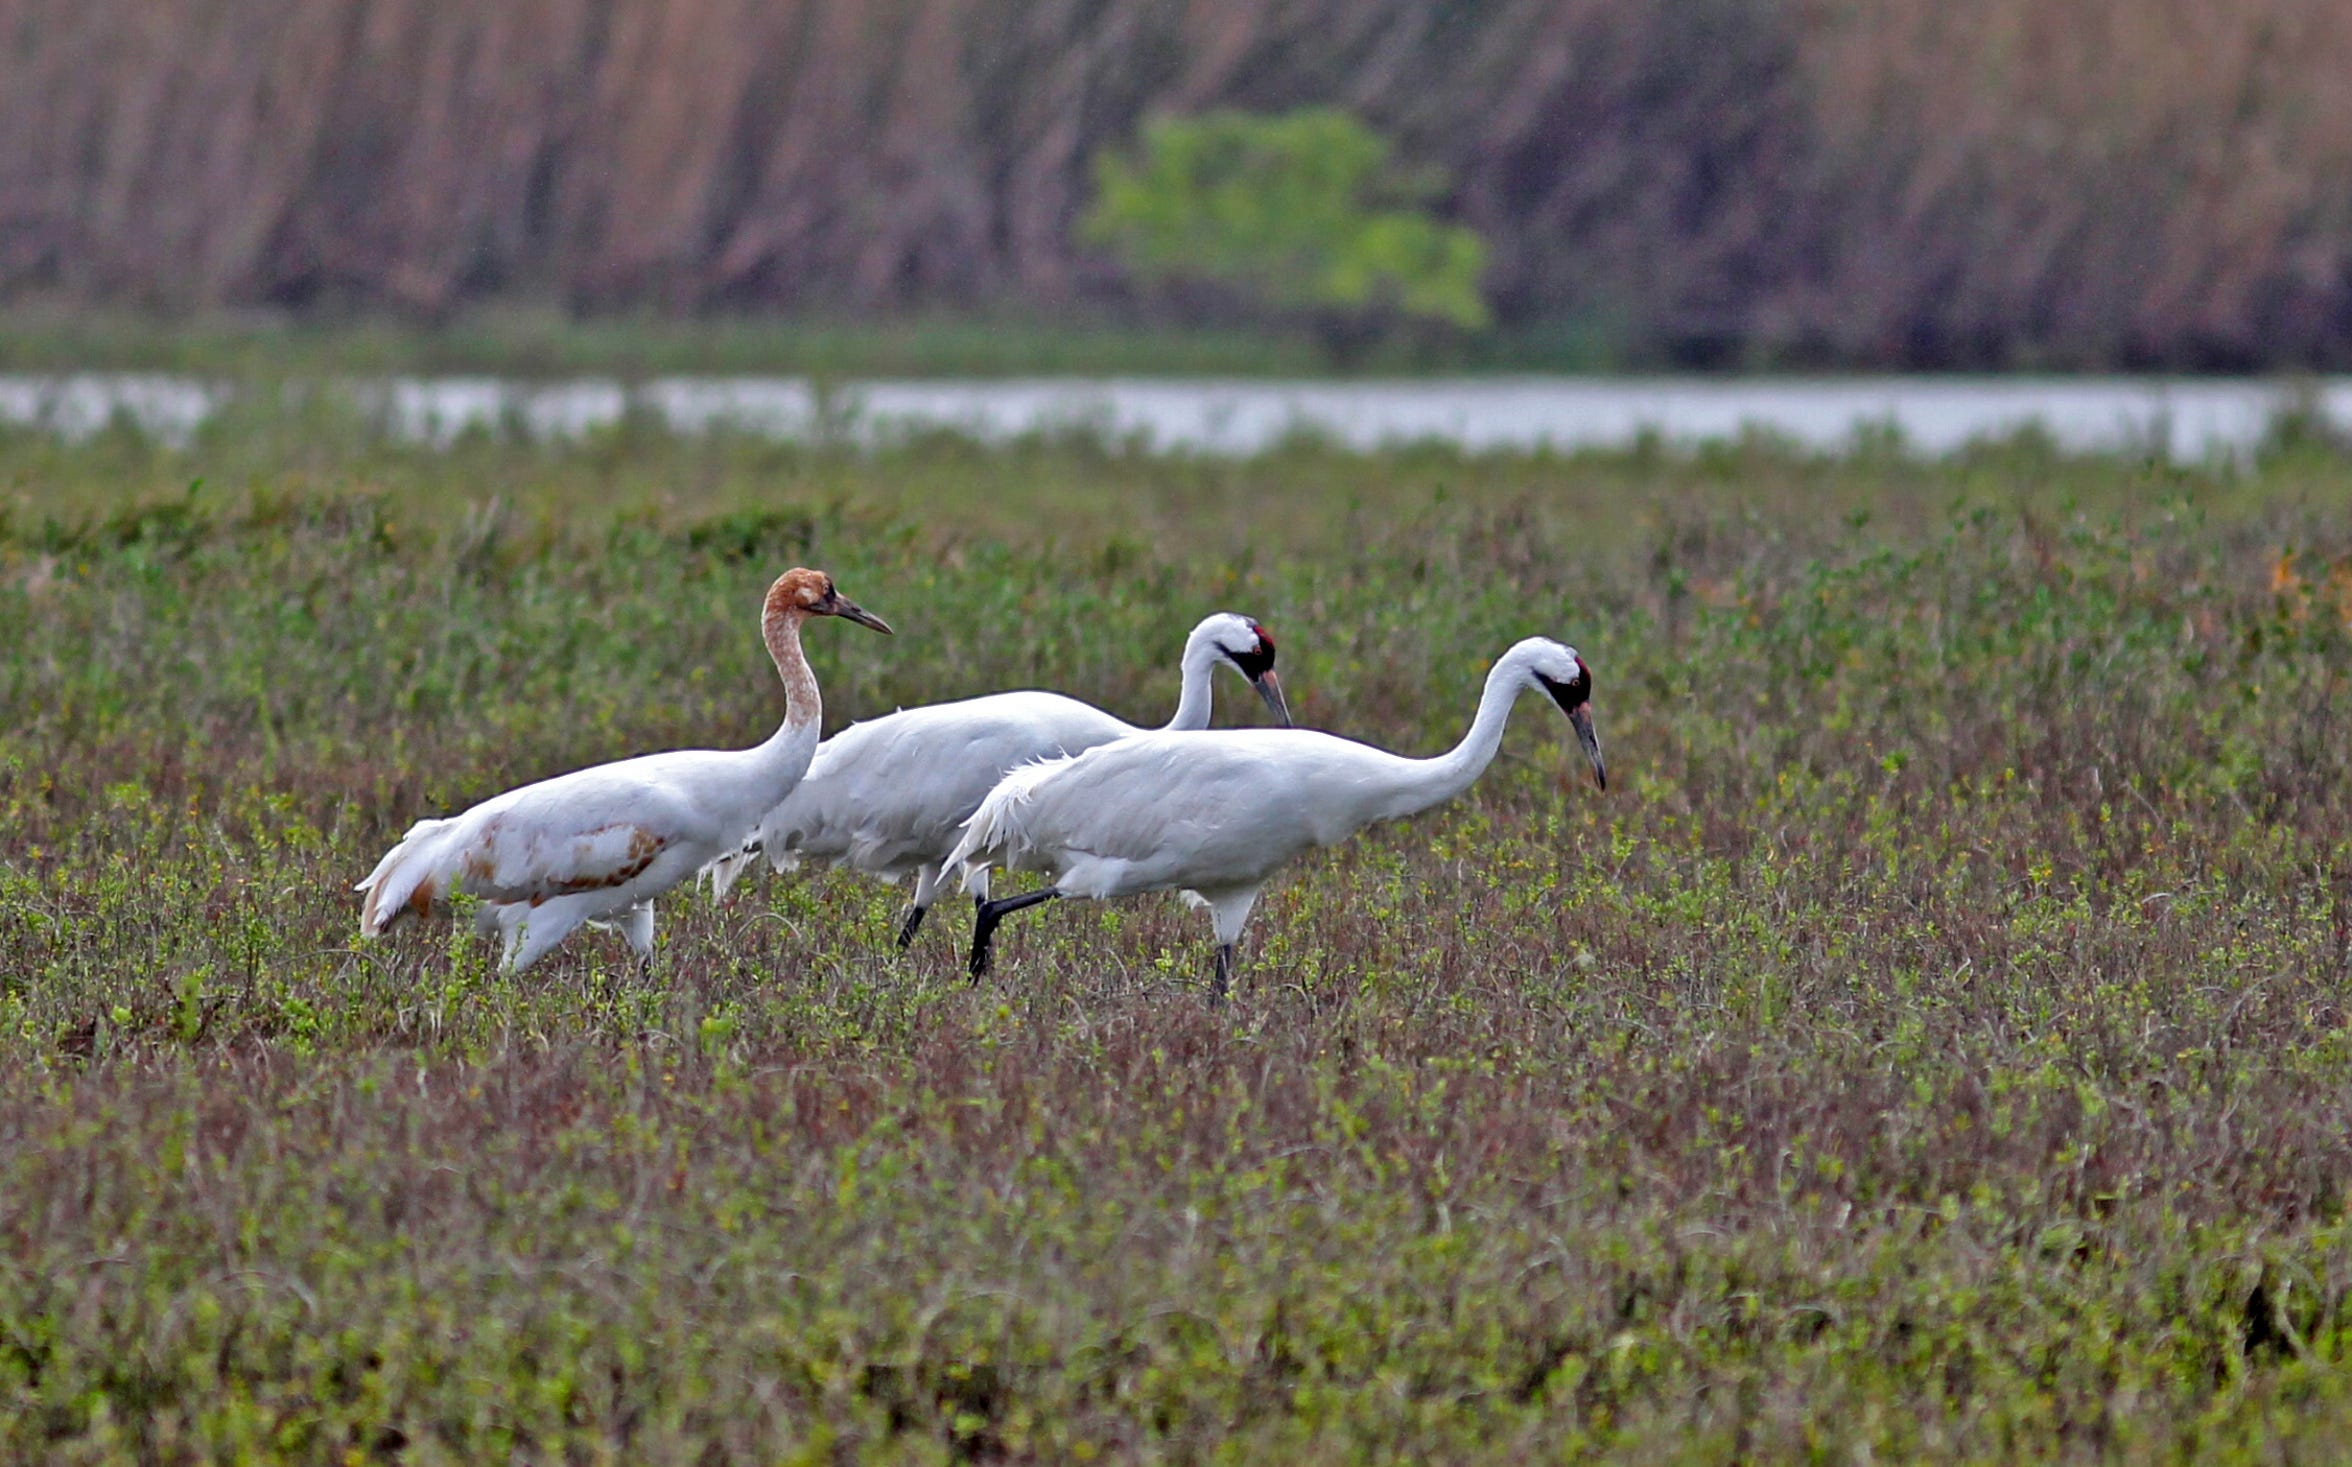 The whooping cranes has not arrived to the Aransas National Wildlife Refuge when Harvey made landfall.